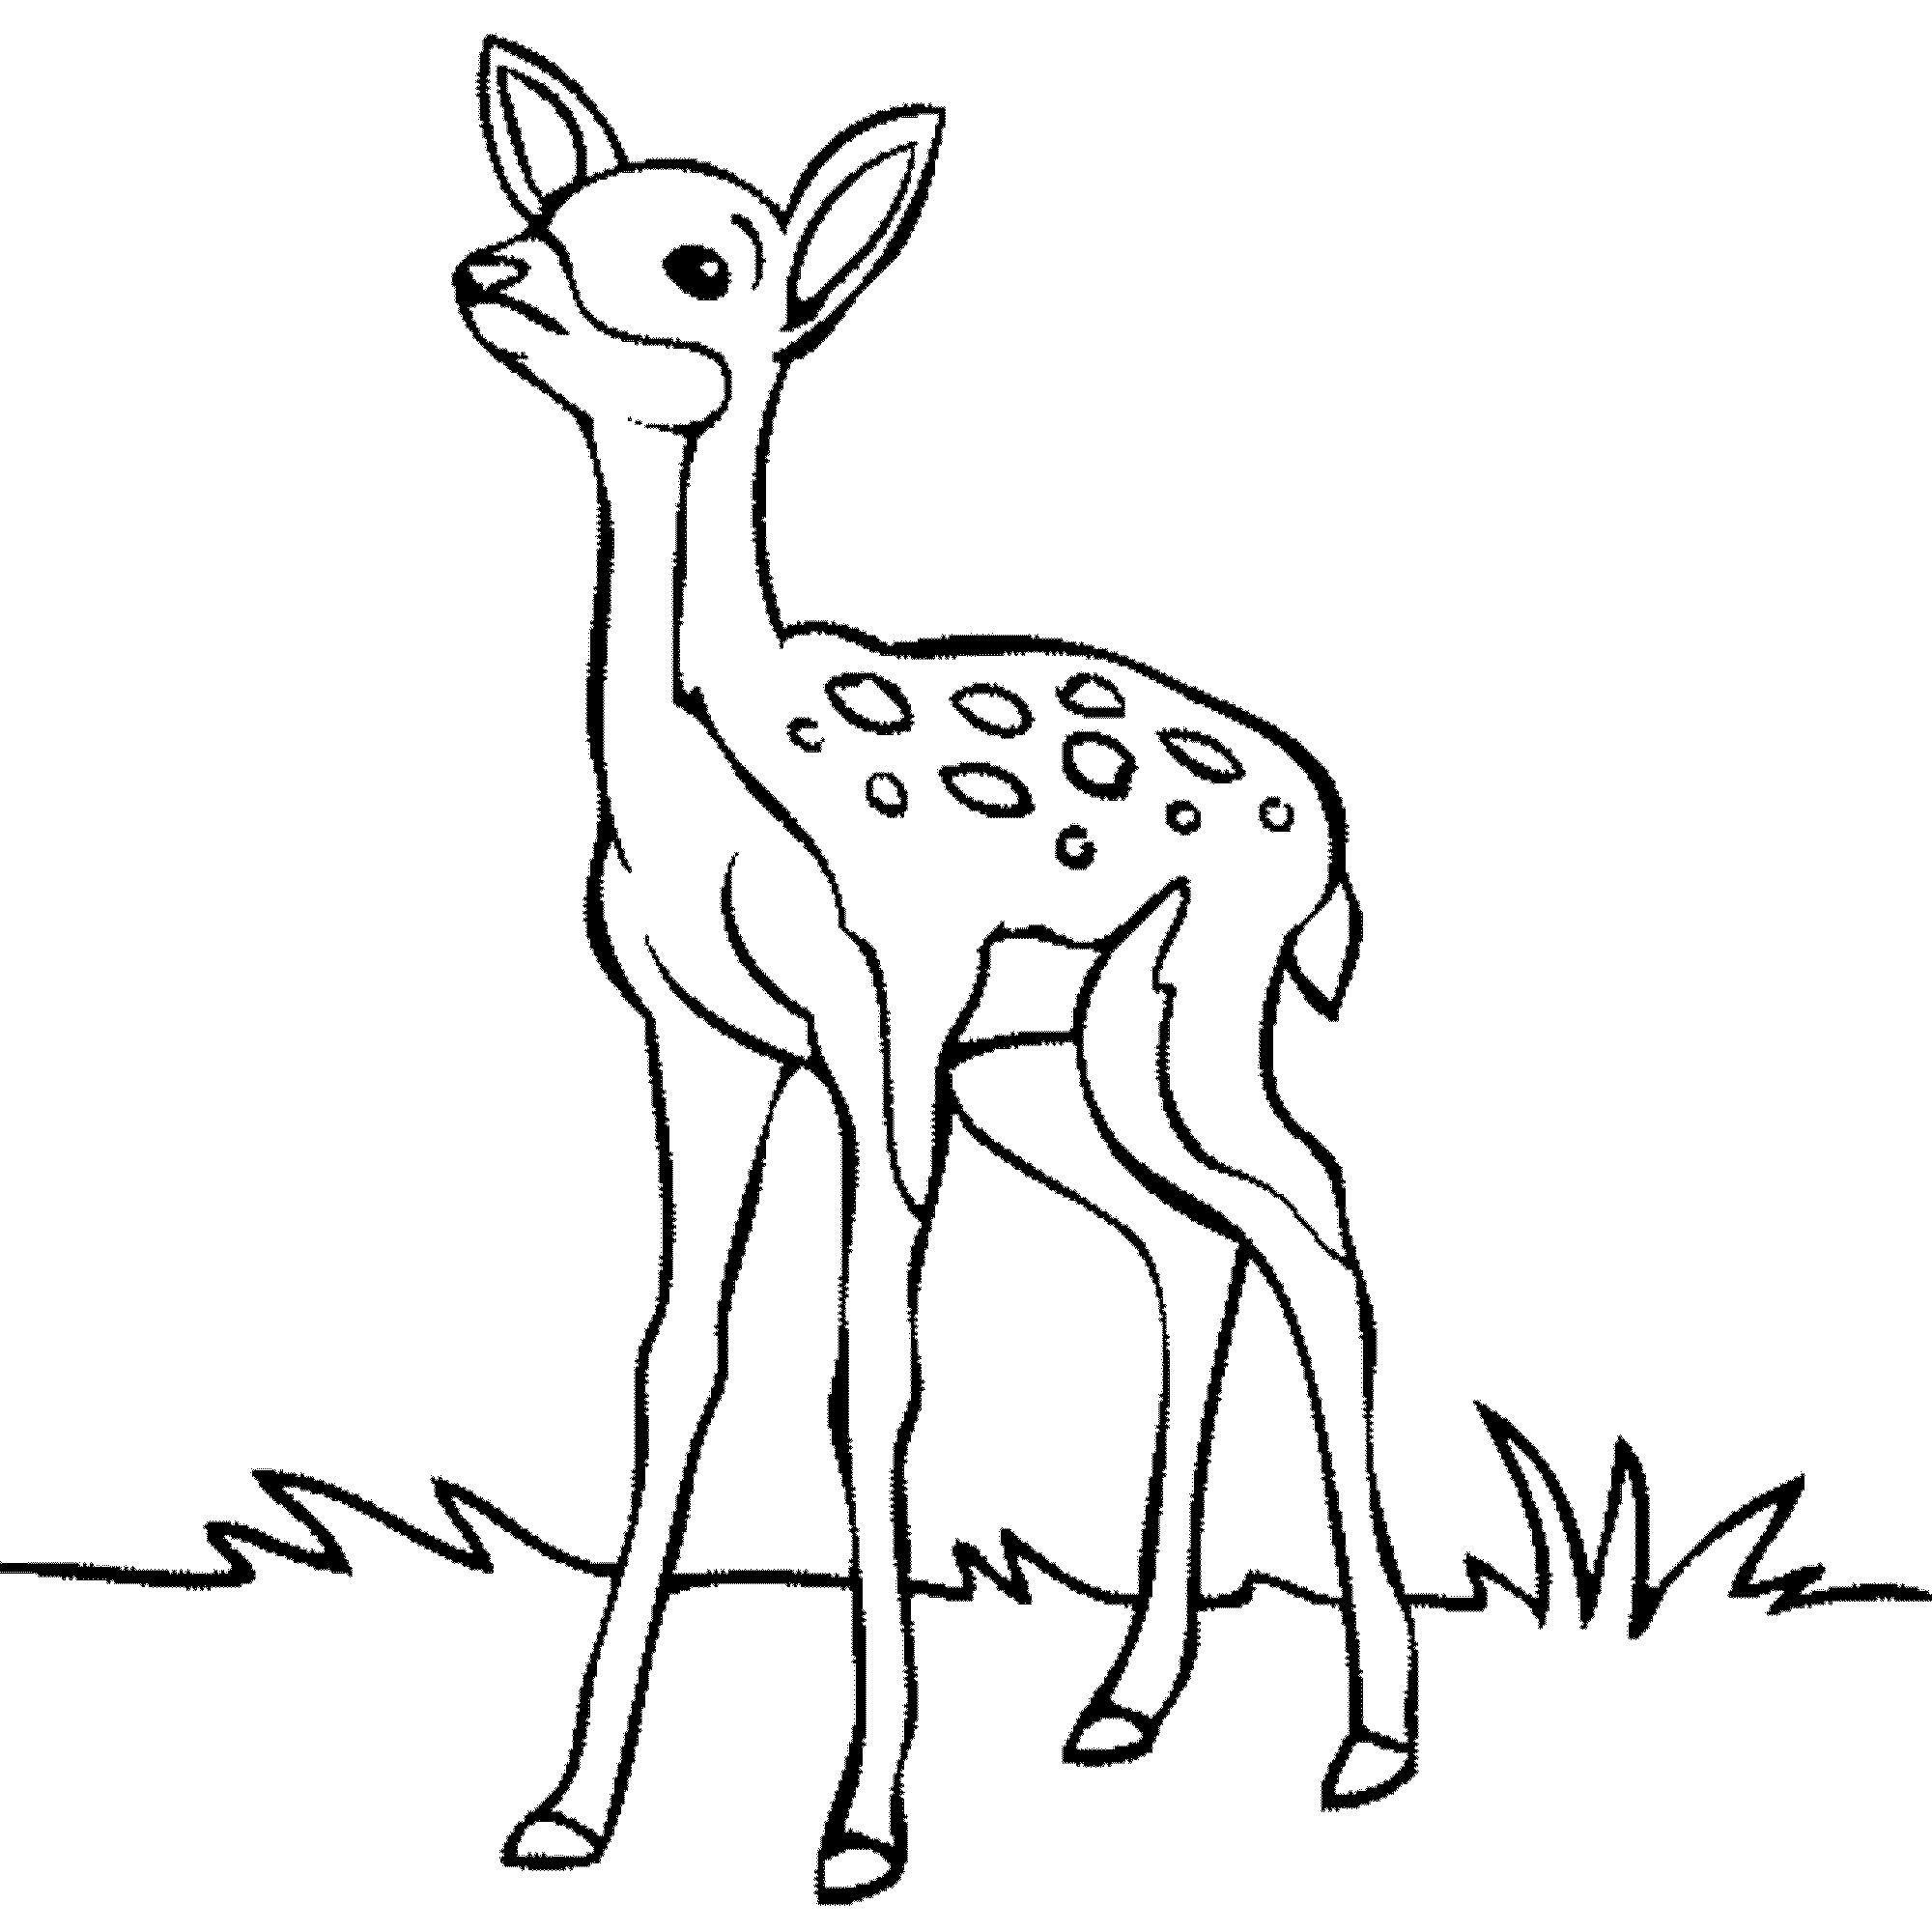 Deer clipart black and white 3 » Clipart Station.